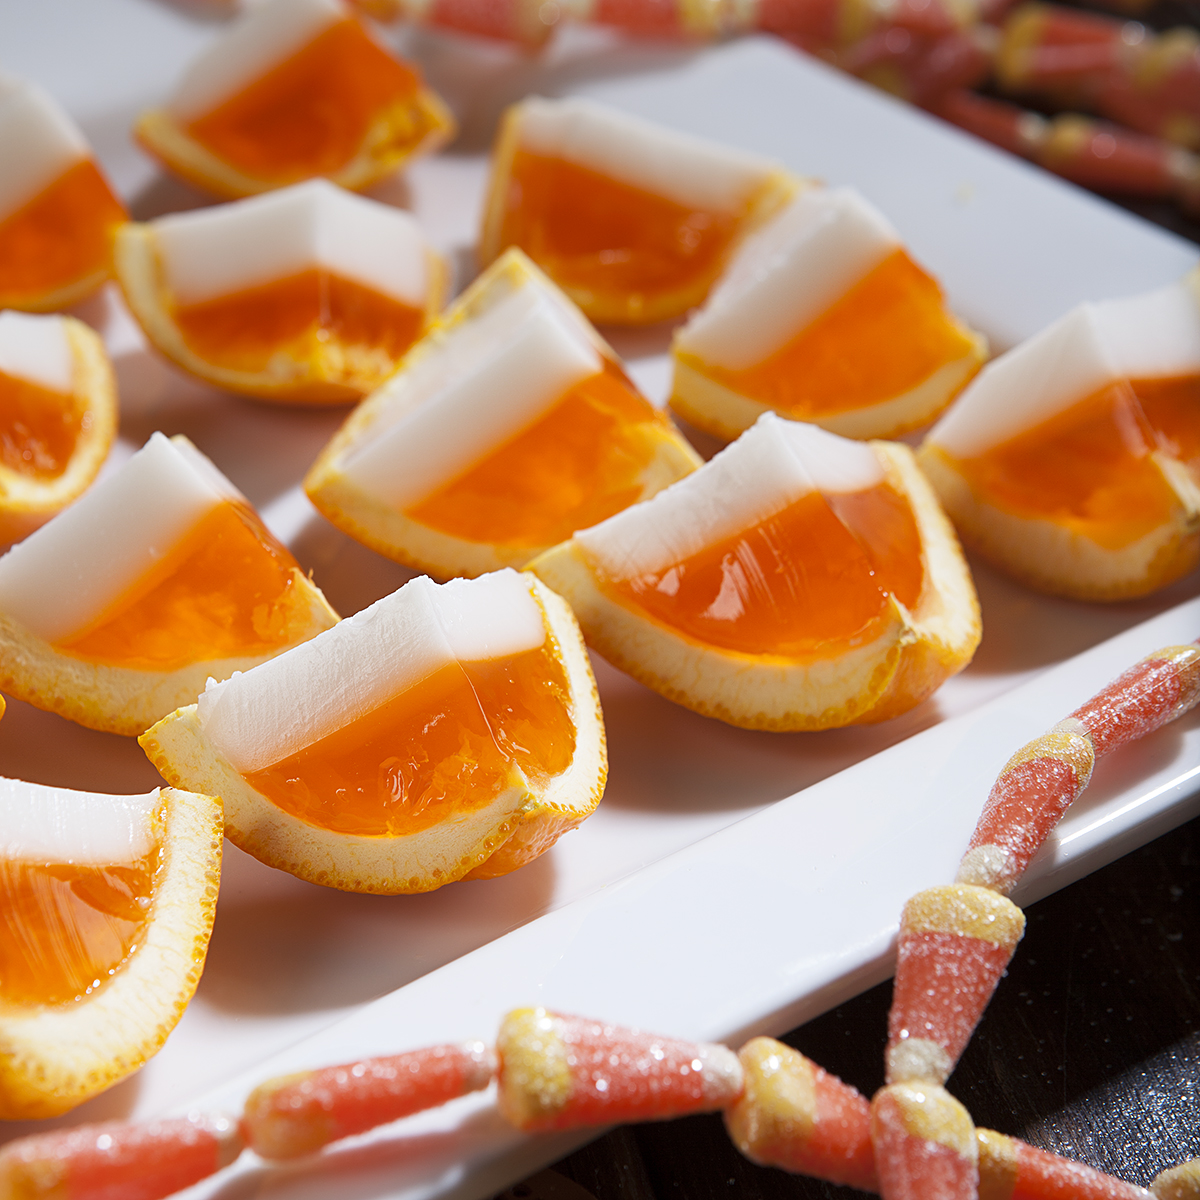 candy corn flavored jello shots